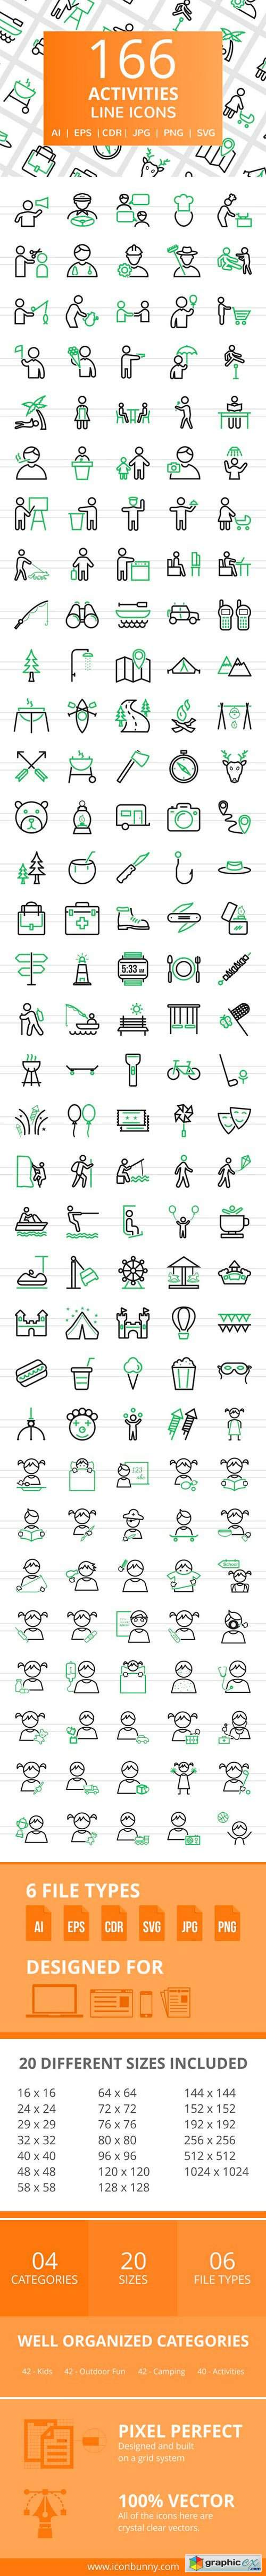 166 Activities Line Icons